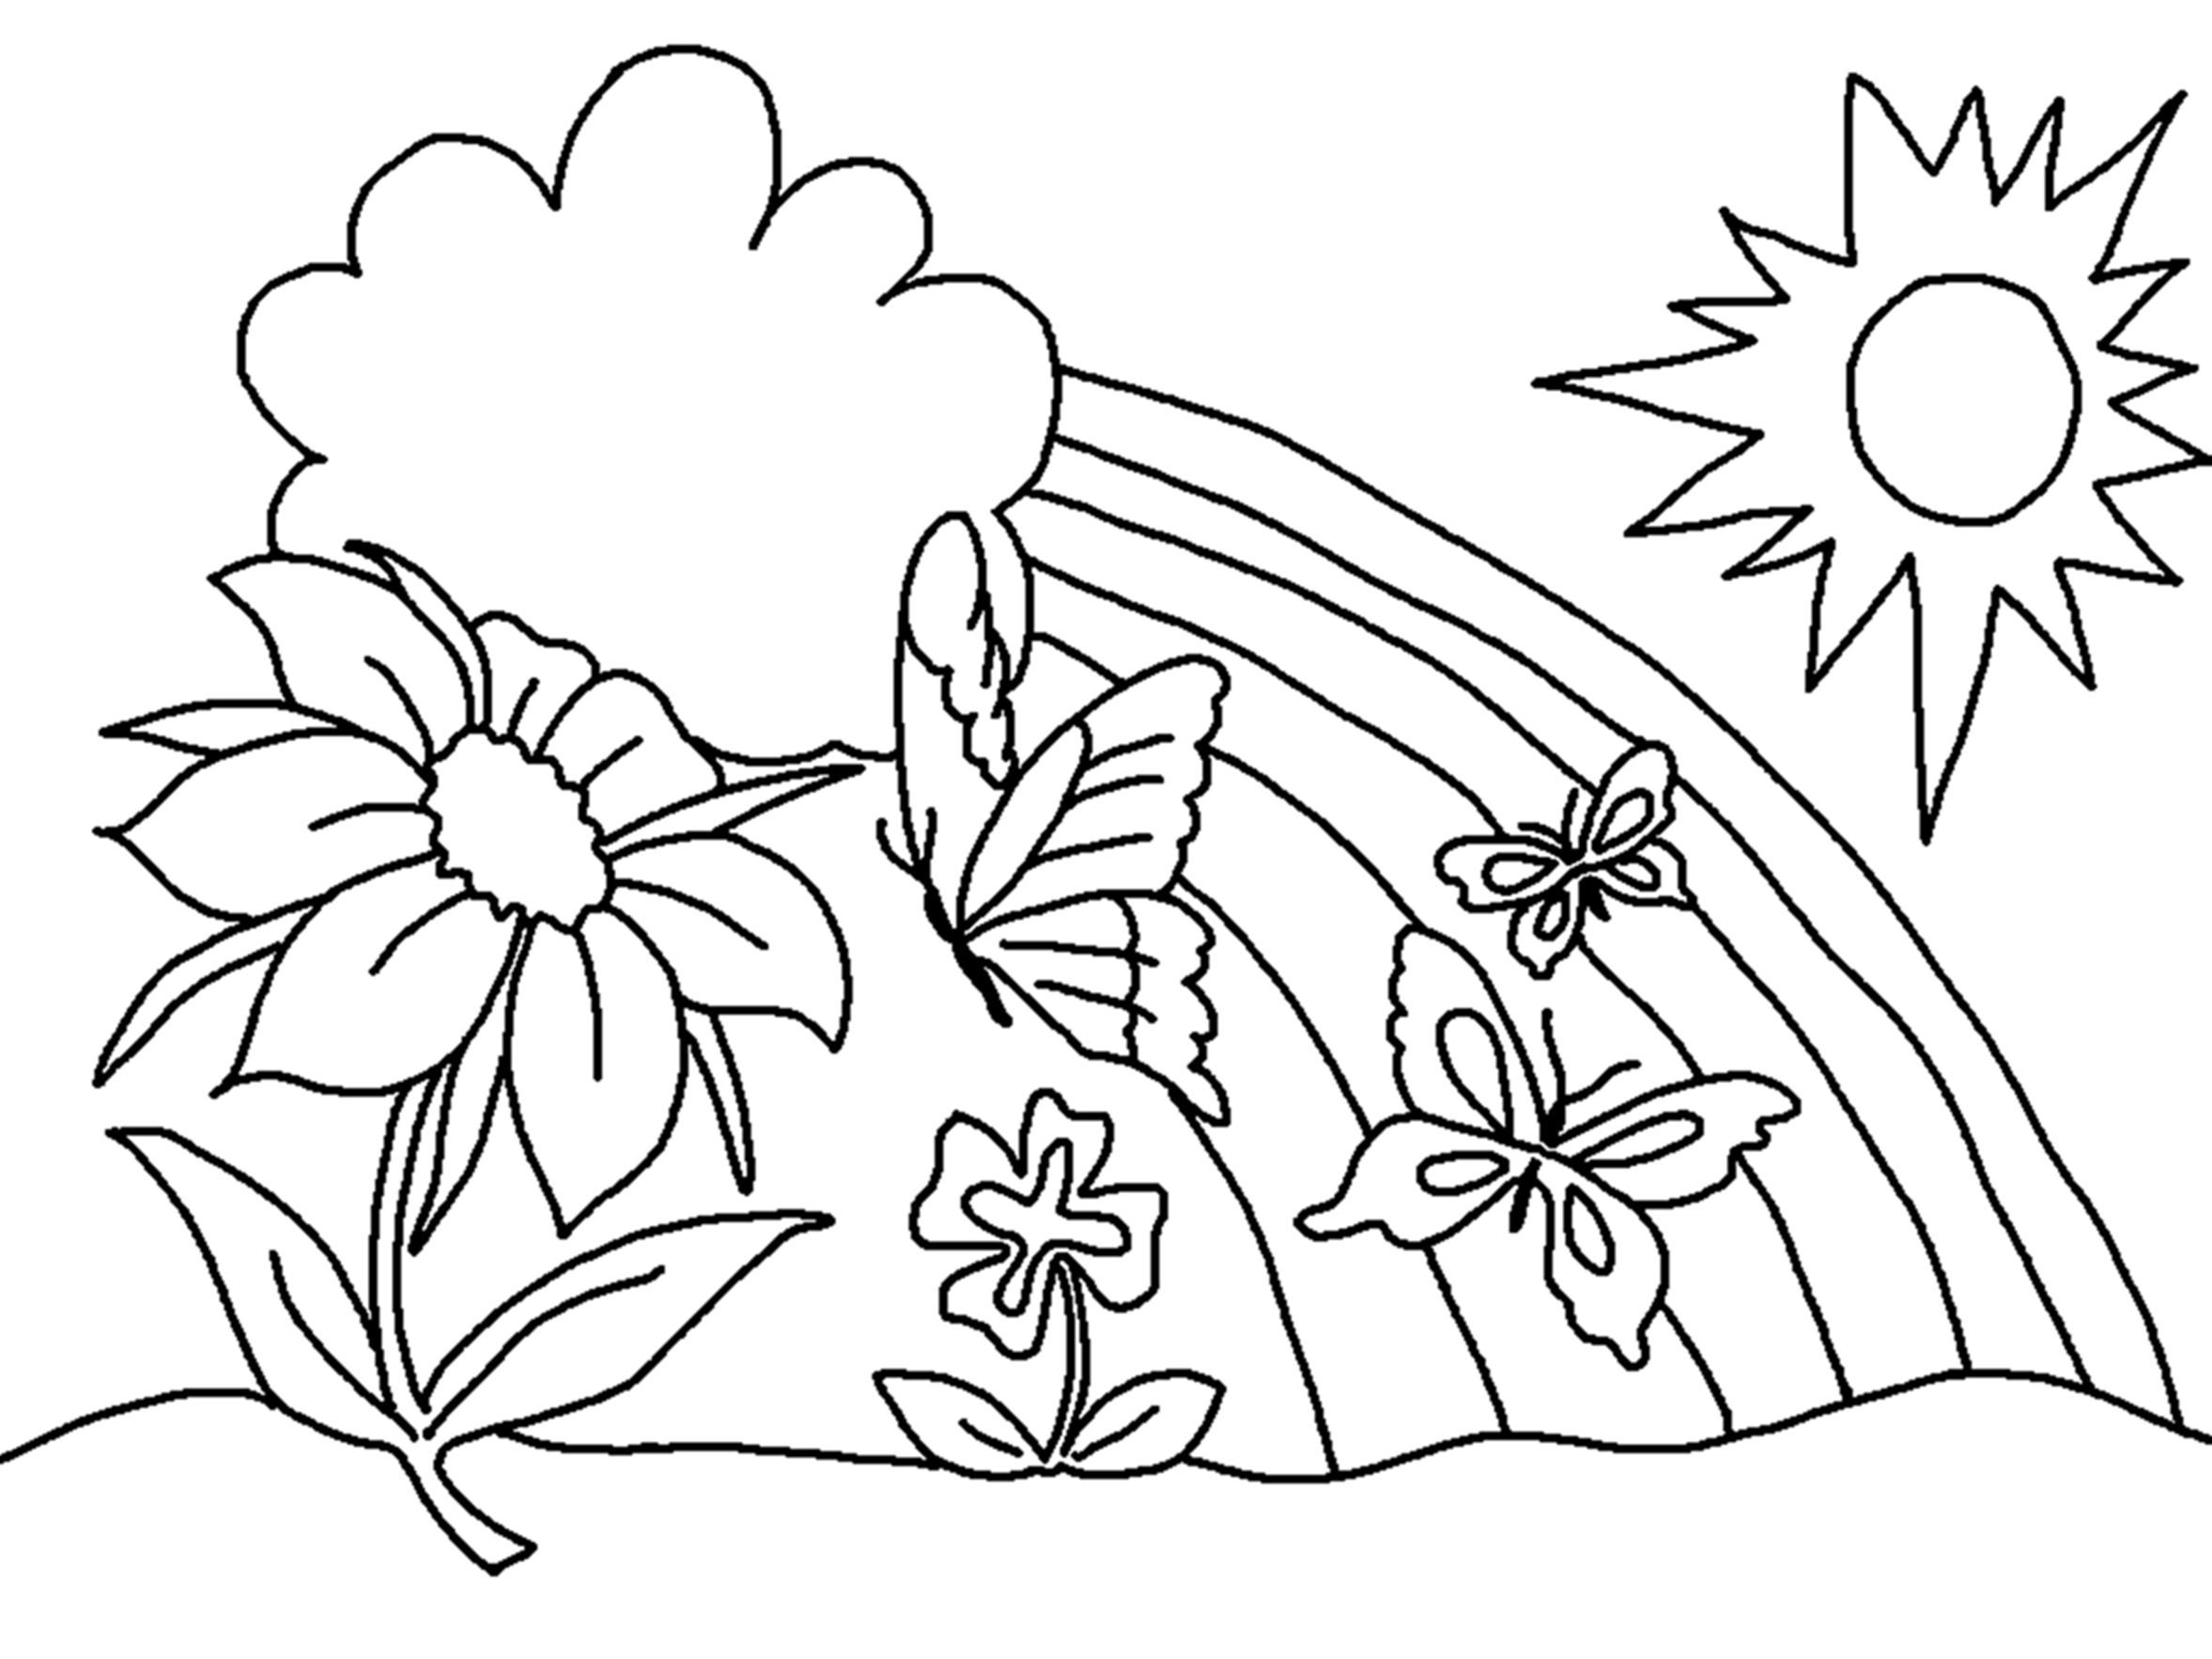 Coloring pages download - Download Free Flower Coloring Page